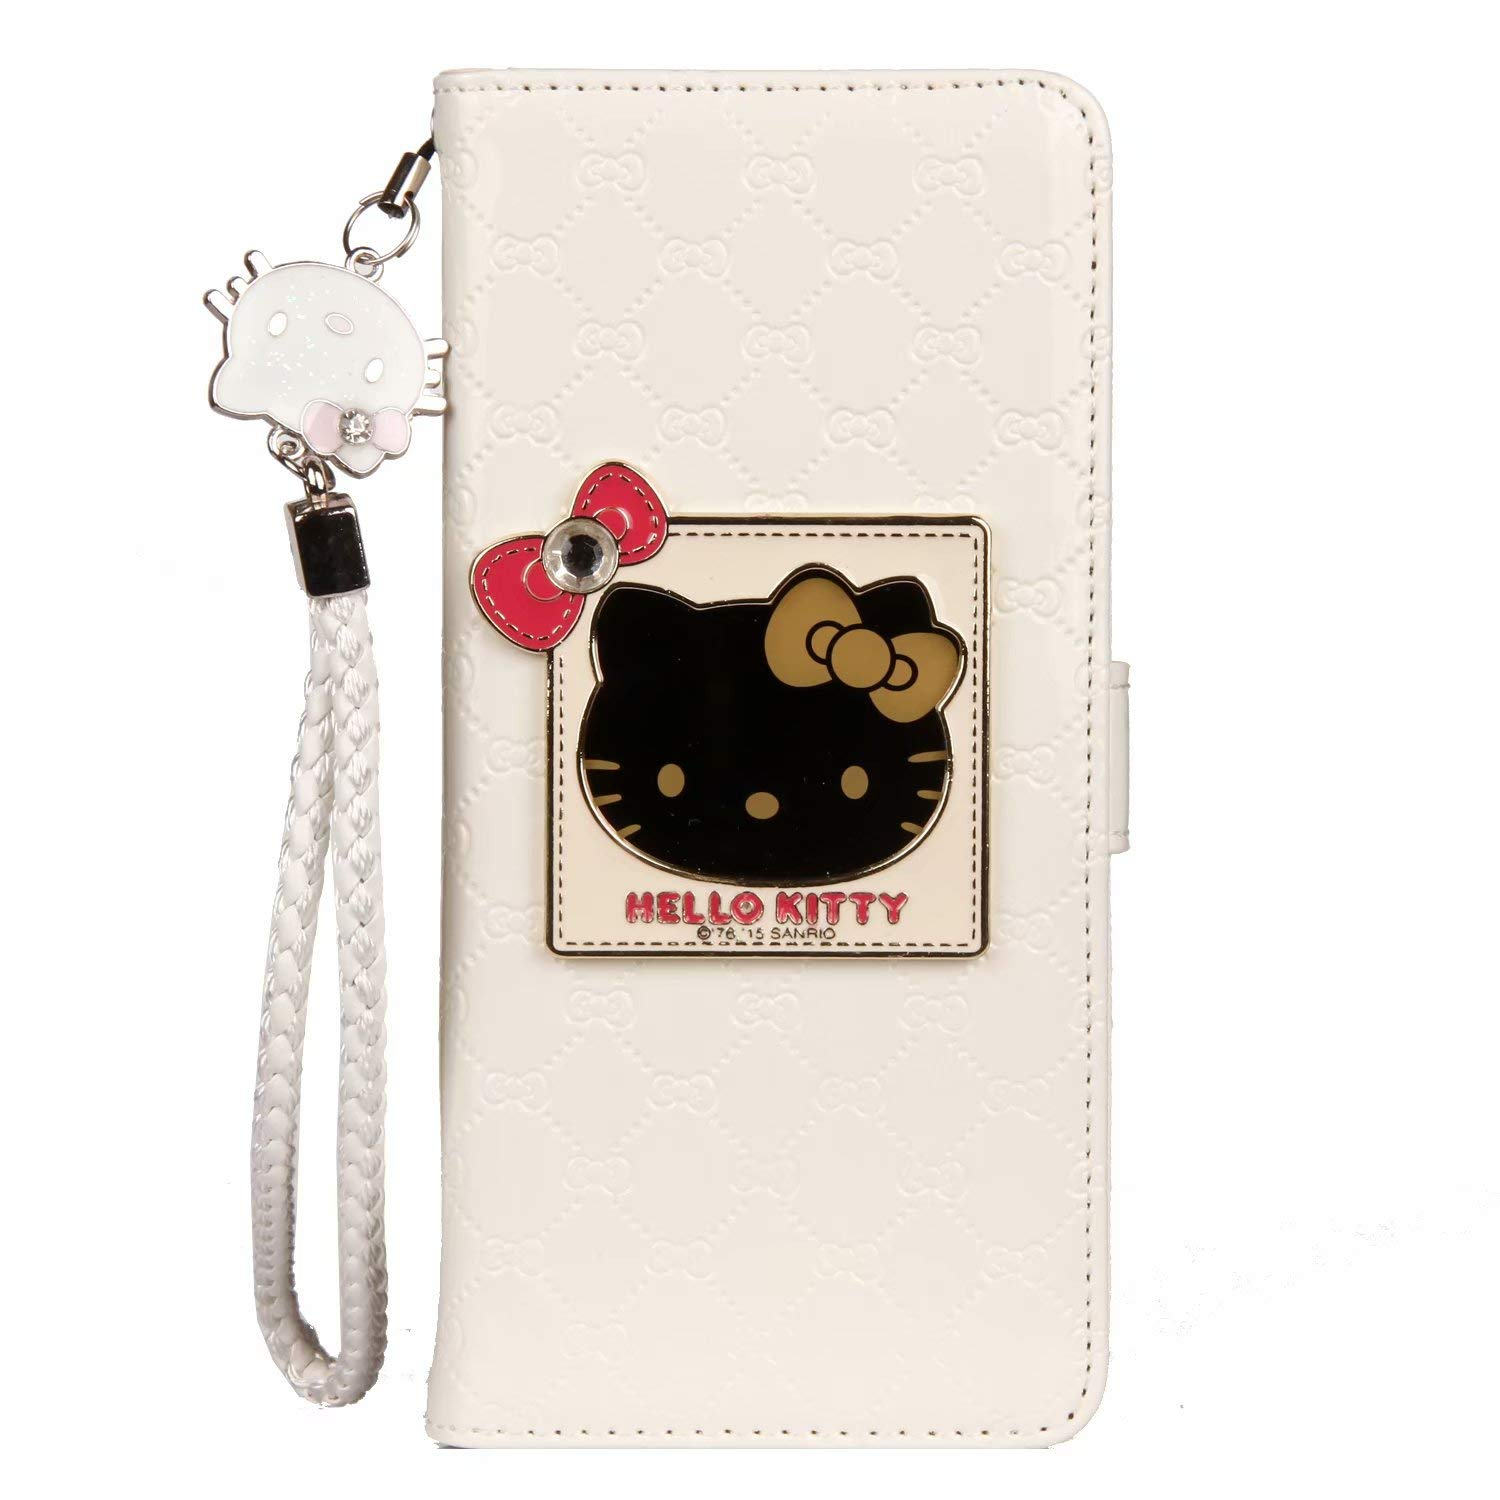 35c05aa61 iPhone 6 / 6s Hello Kitty Wallet Case,Bling Mirror Bowknot PU Leather Purse  Card Slot Pouch Flip Cover Kickstand Case for Girl Woman Lady (White, ...